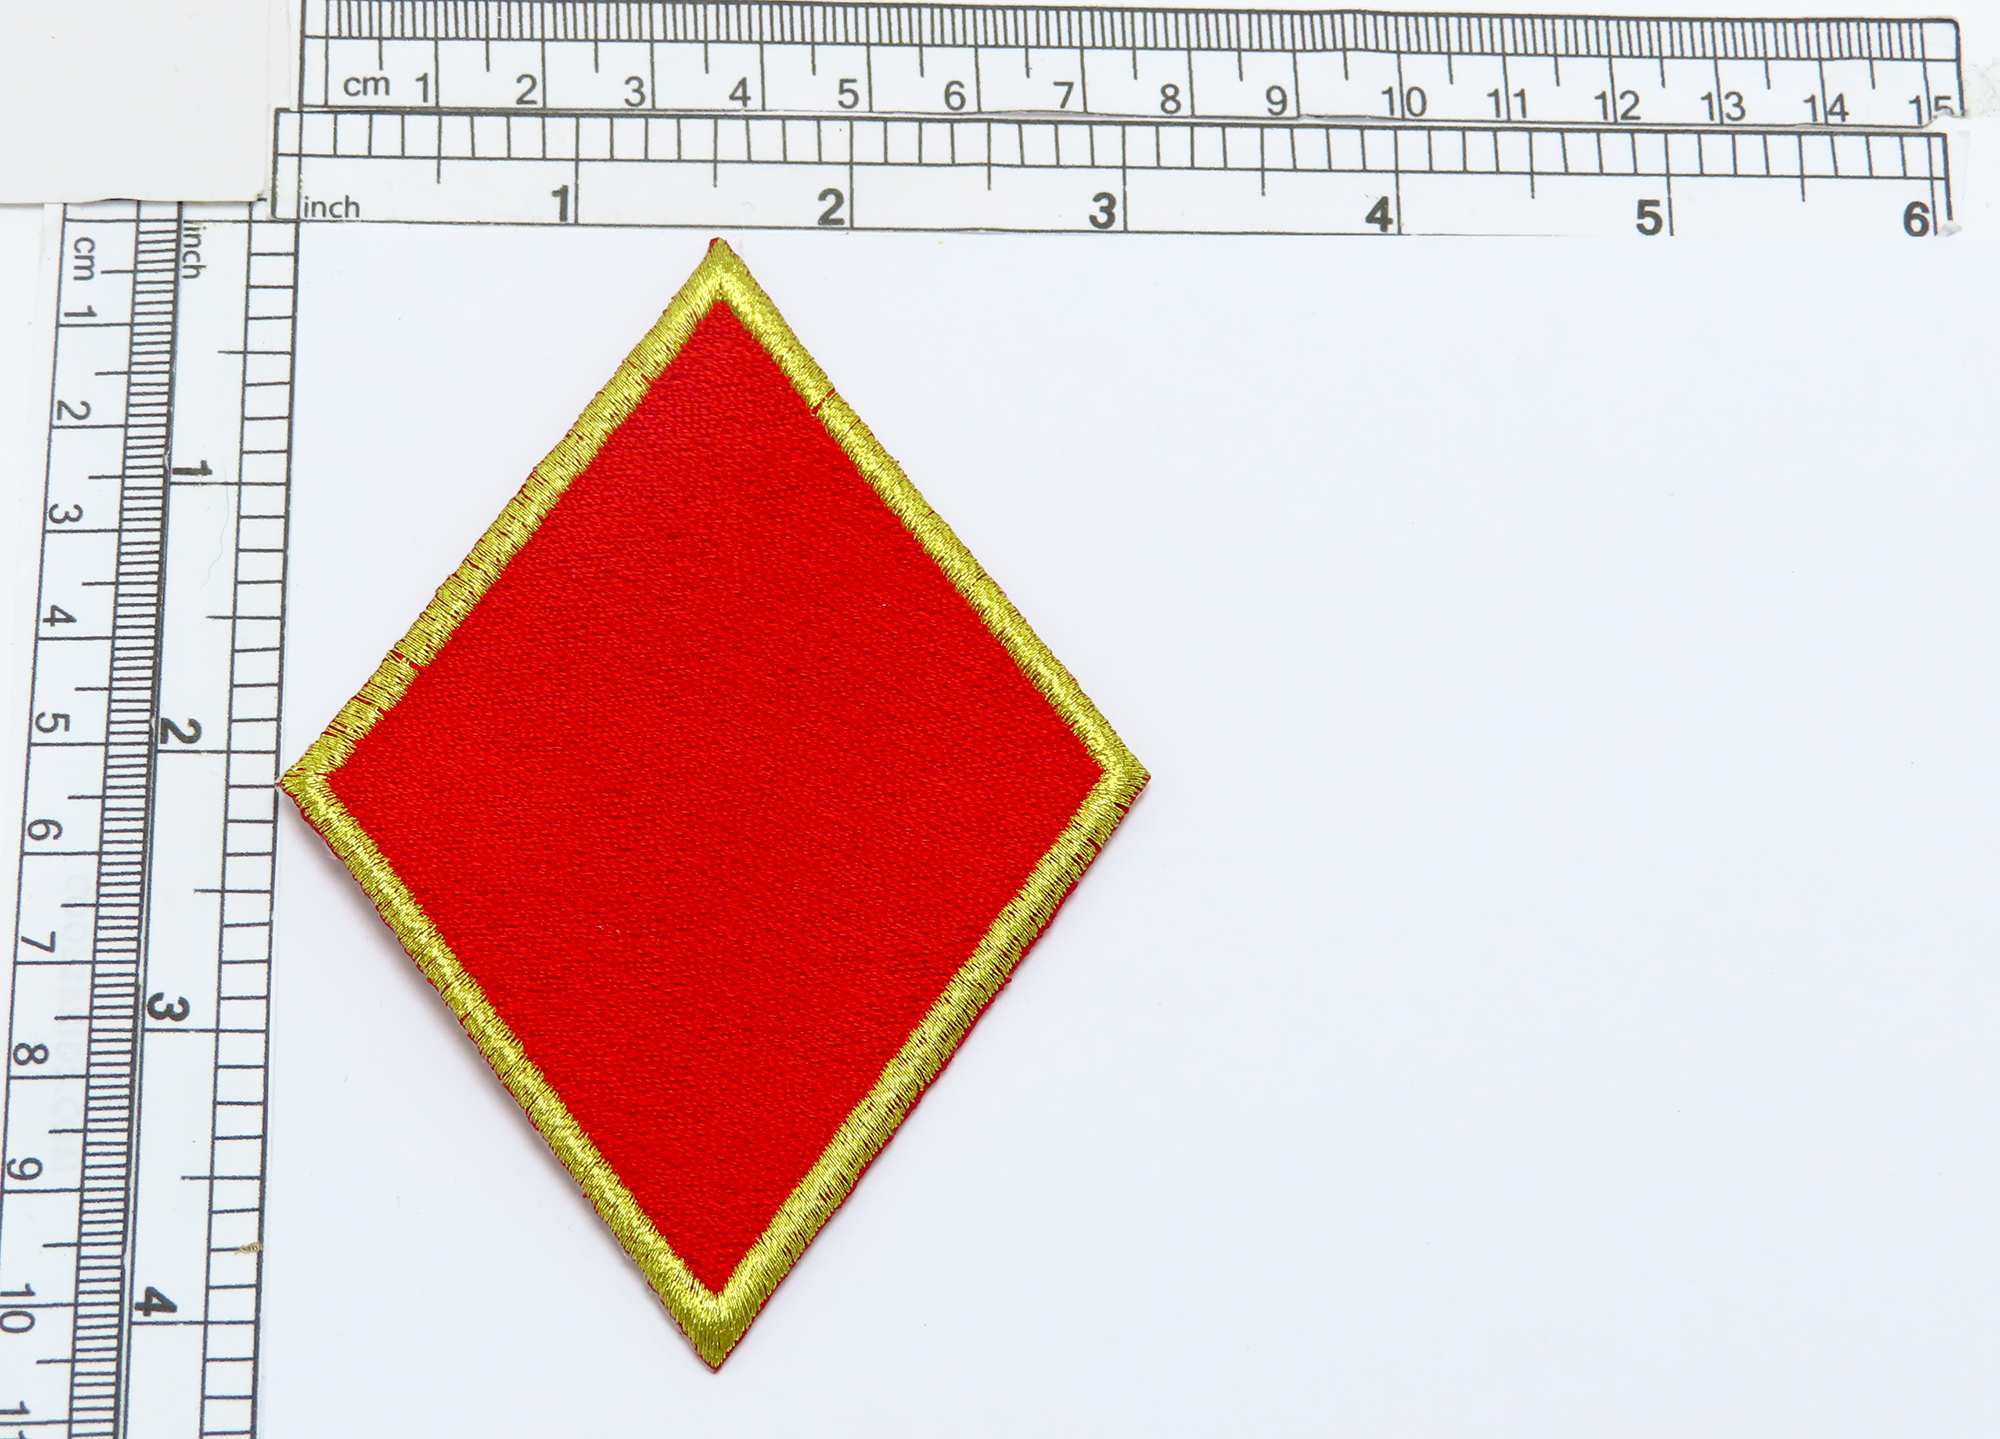 """Red Poker Diamond with Gold Border 4 1/8"""" high (105mm)"""